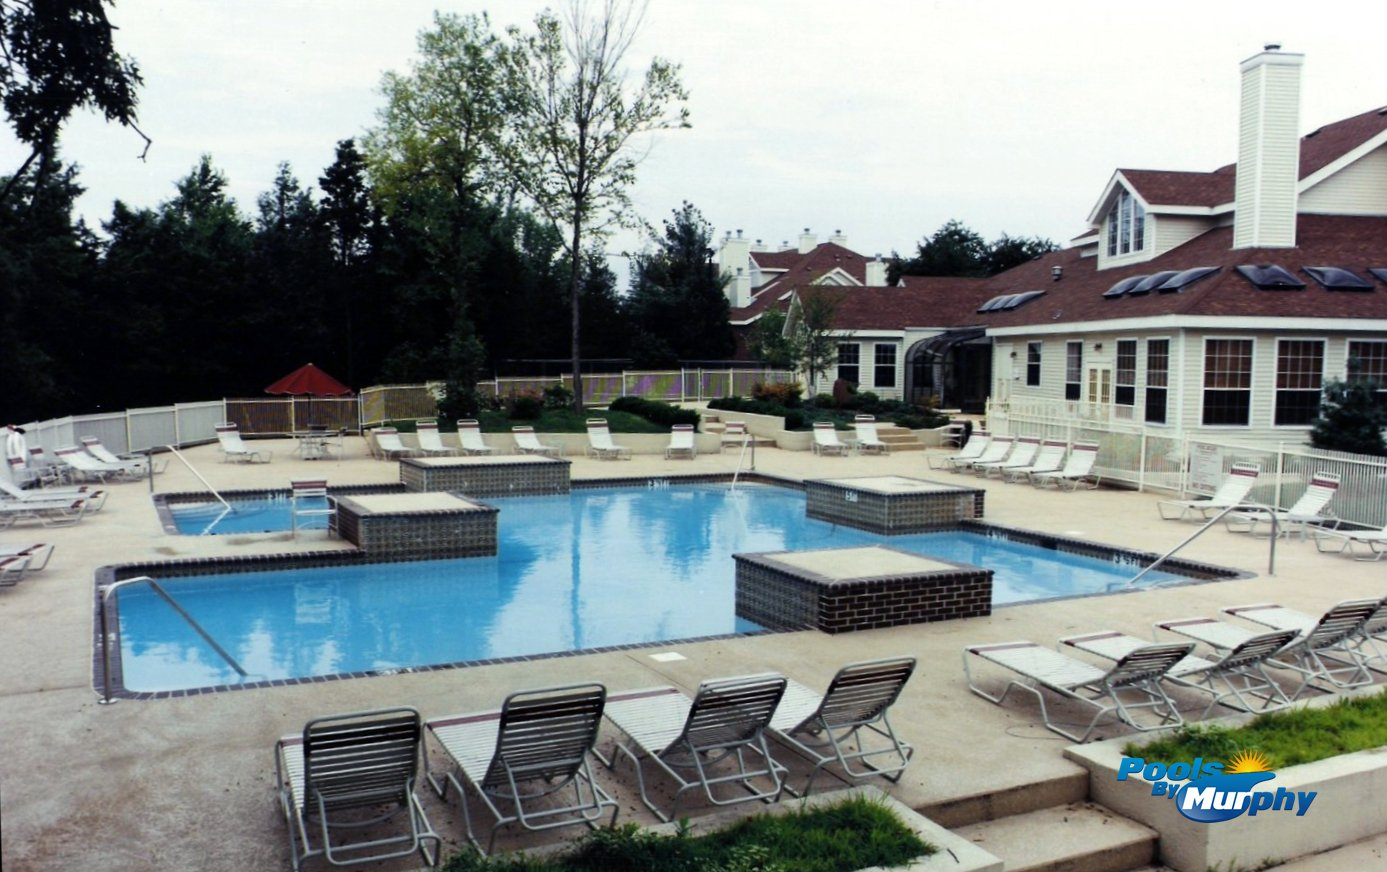 Commercial pool builders fairfield ct pools by murphy for Commercial pools